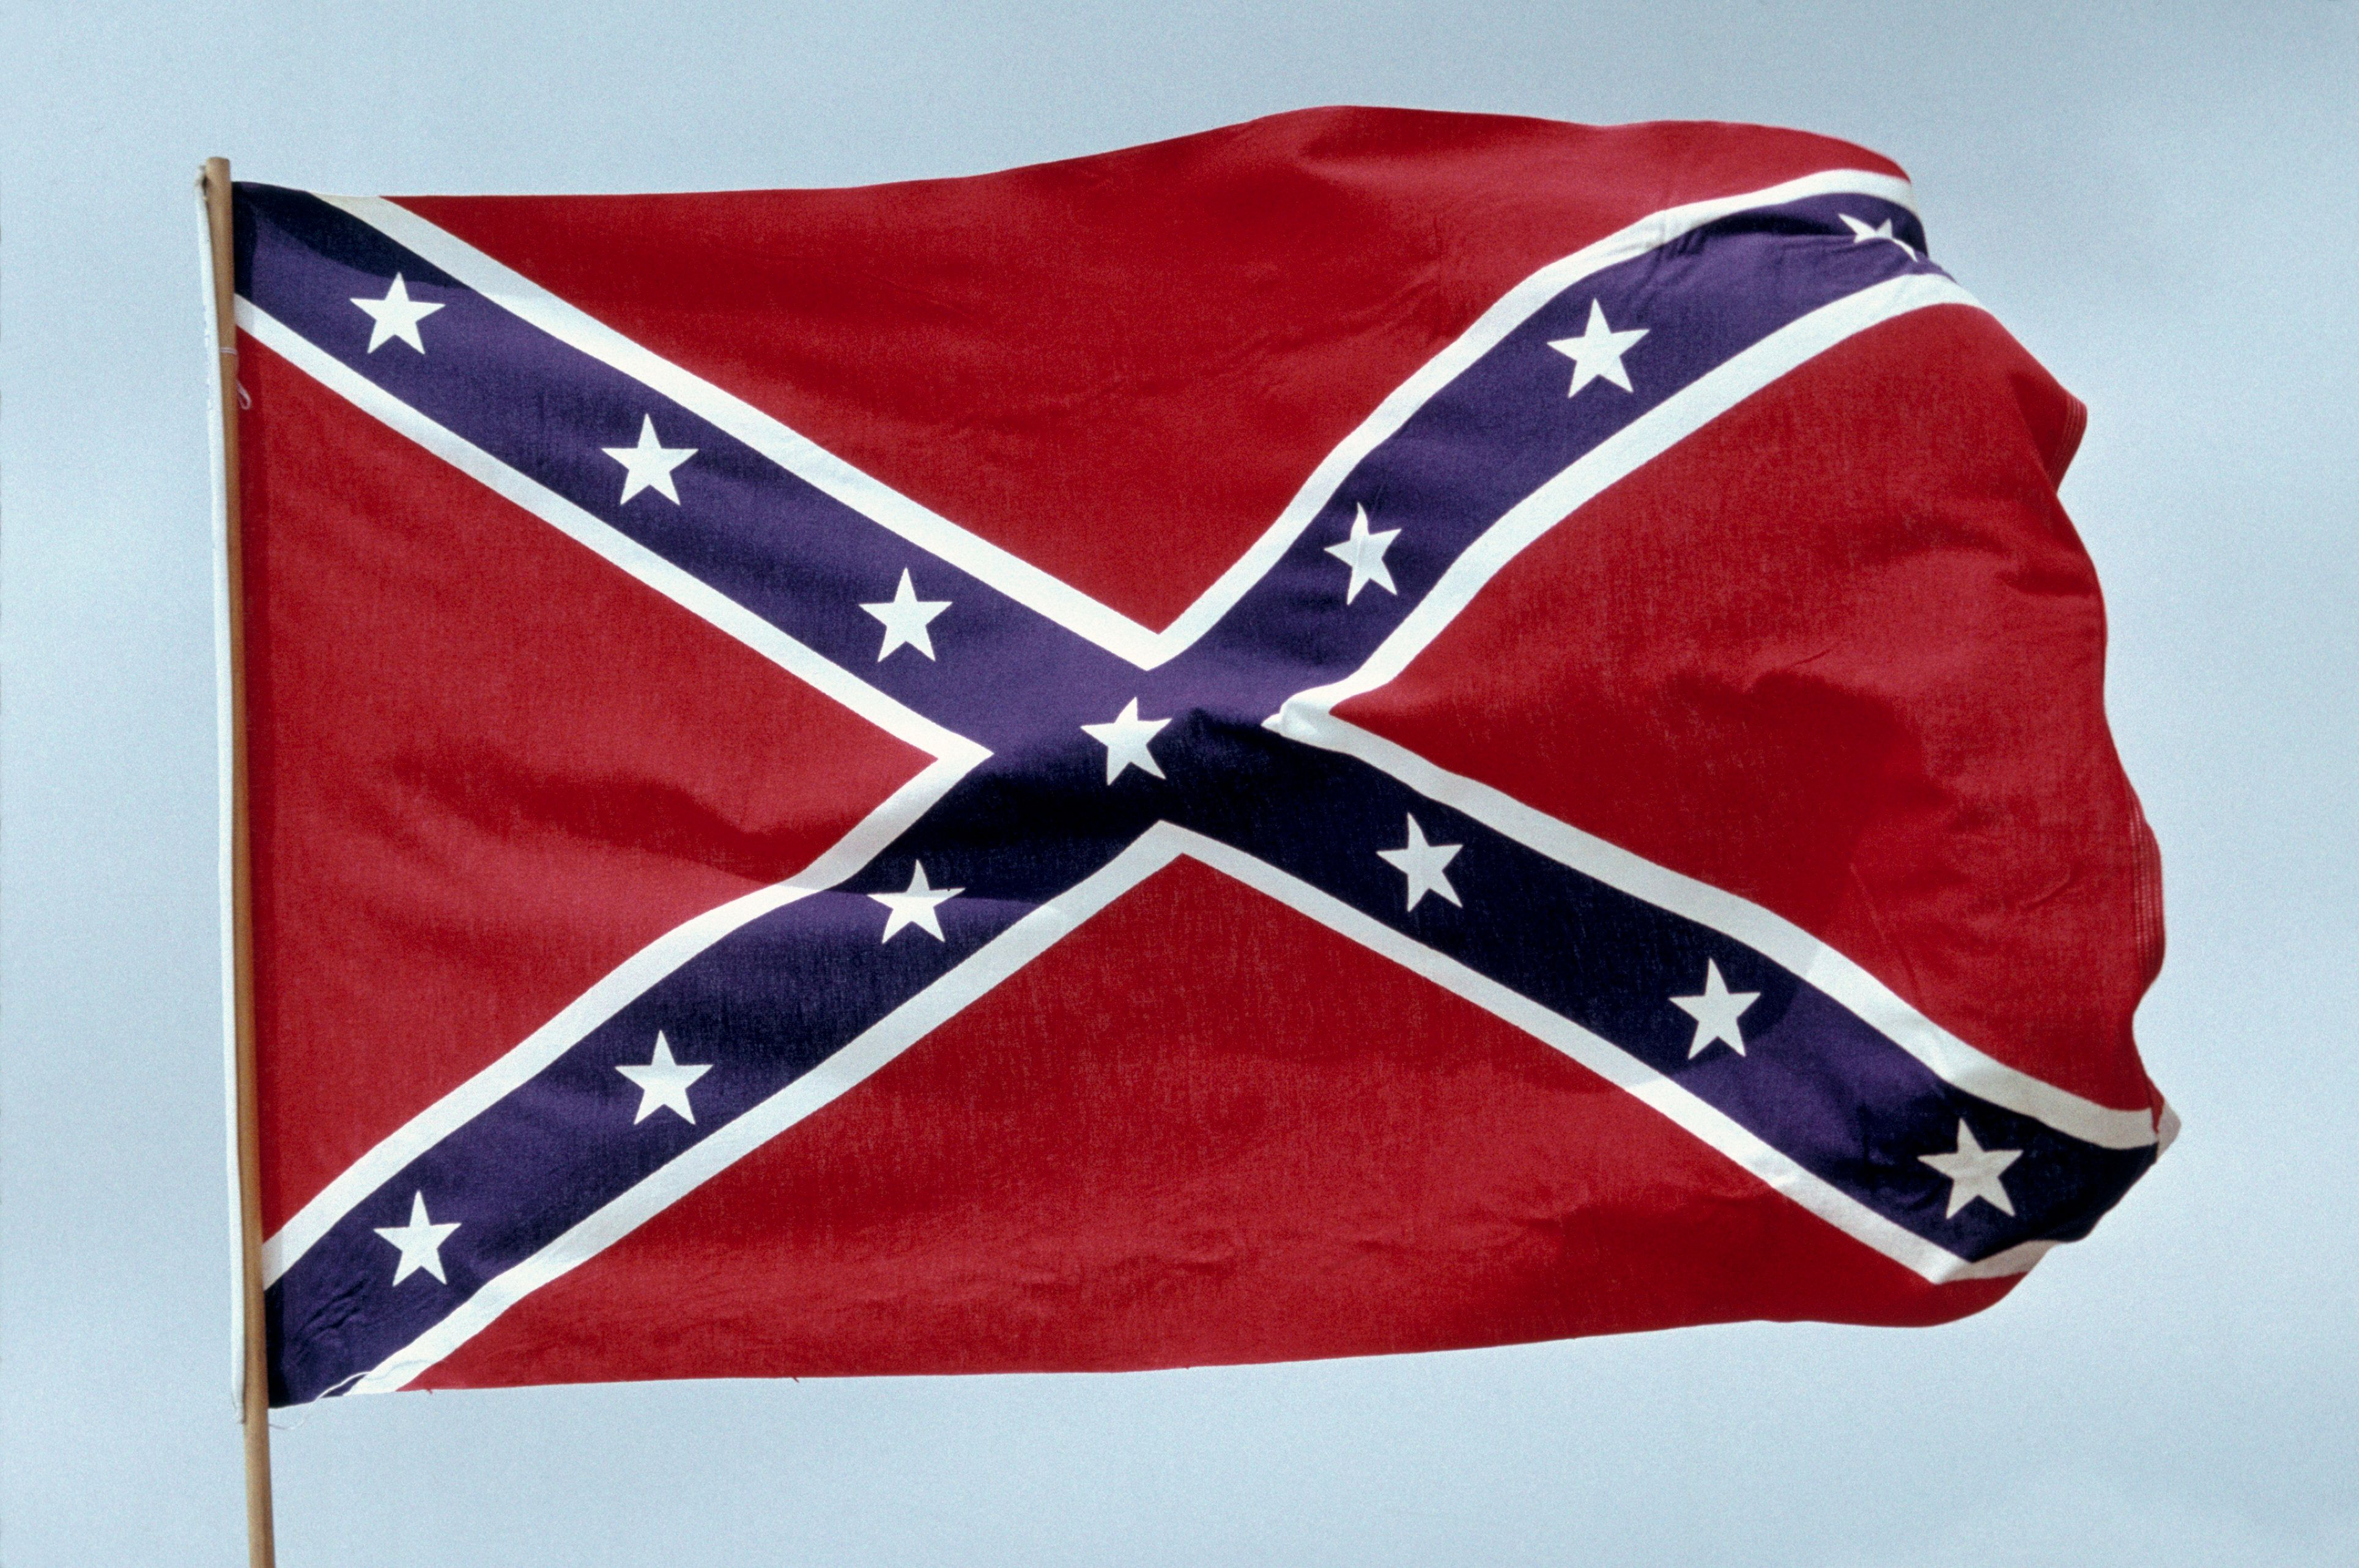 Confederate flag flying on a pole